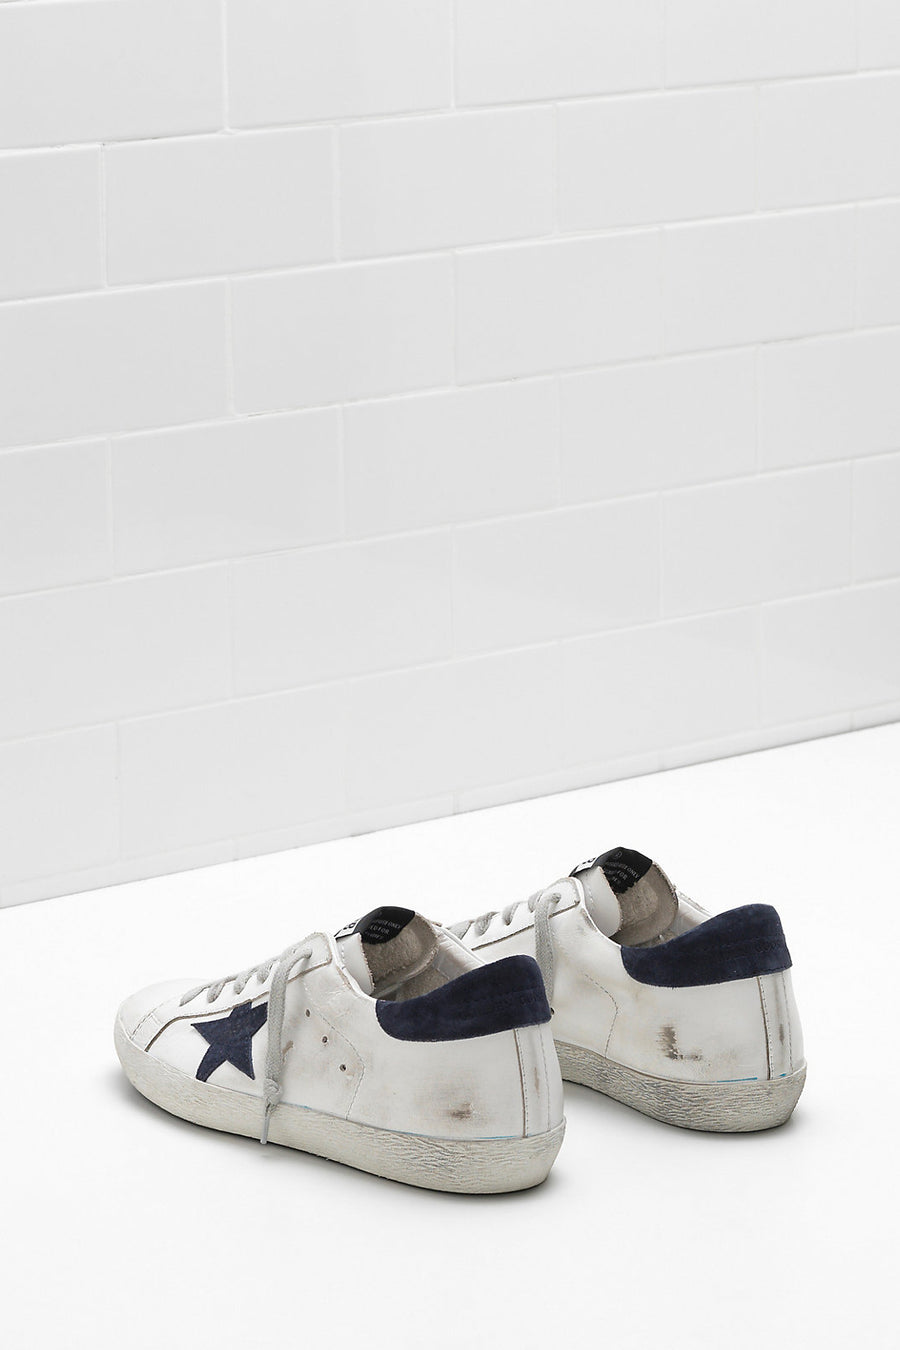 Superstar - White w/ Dark Navy Star